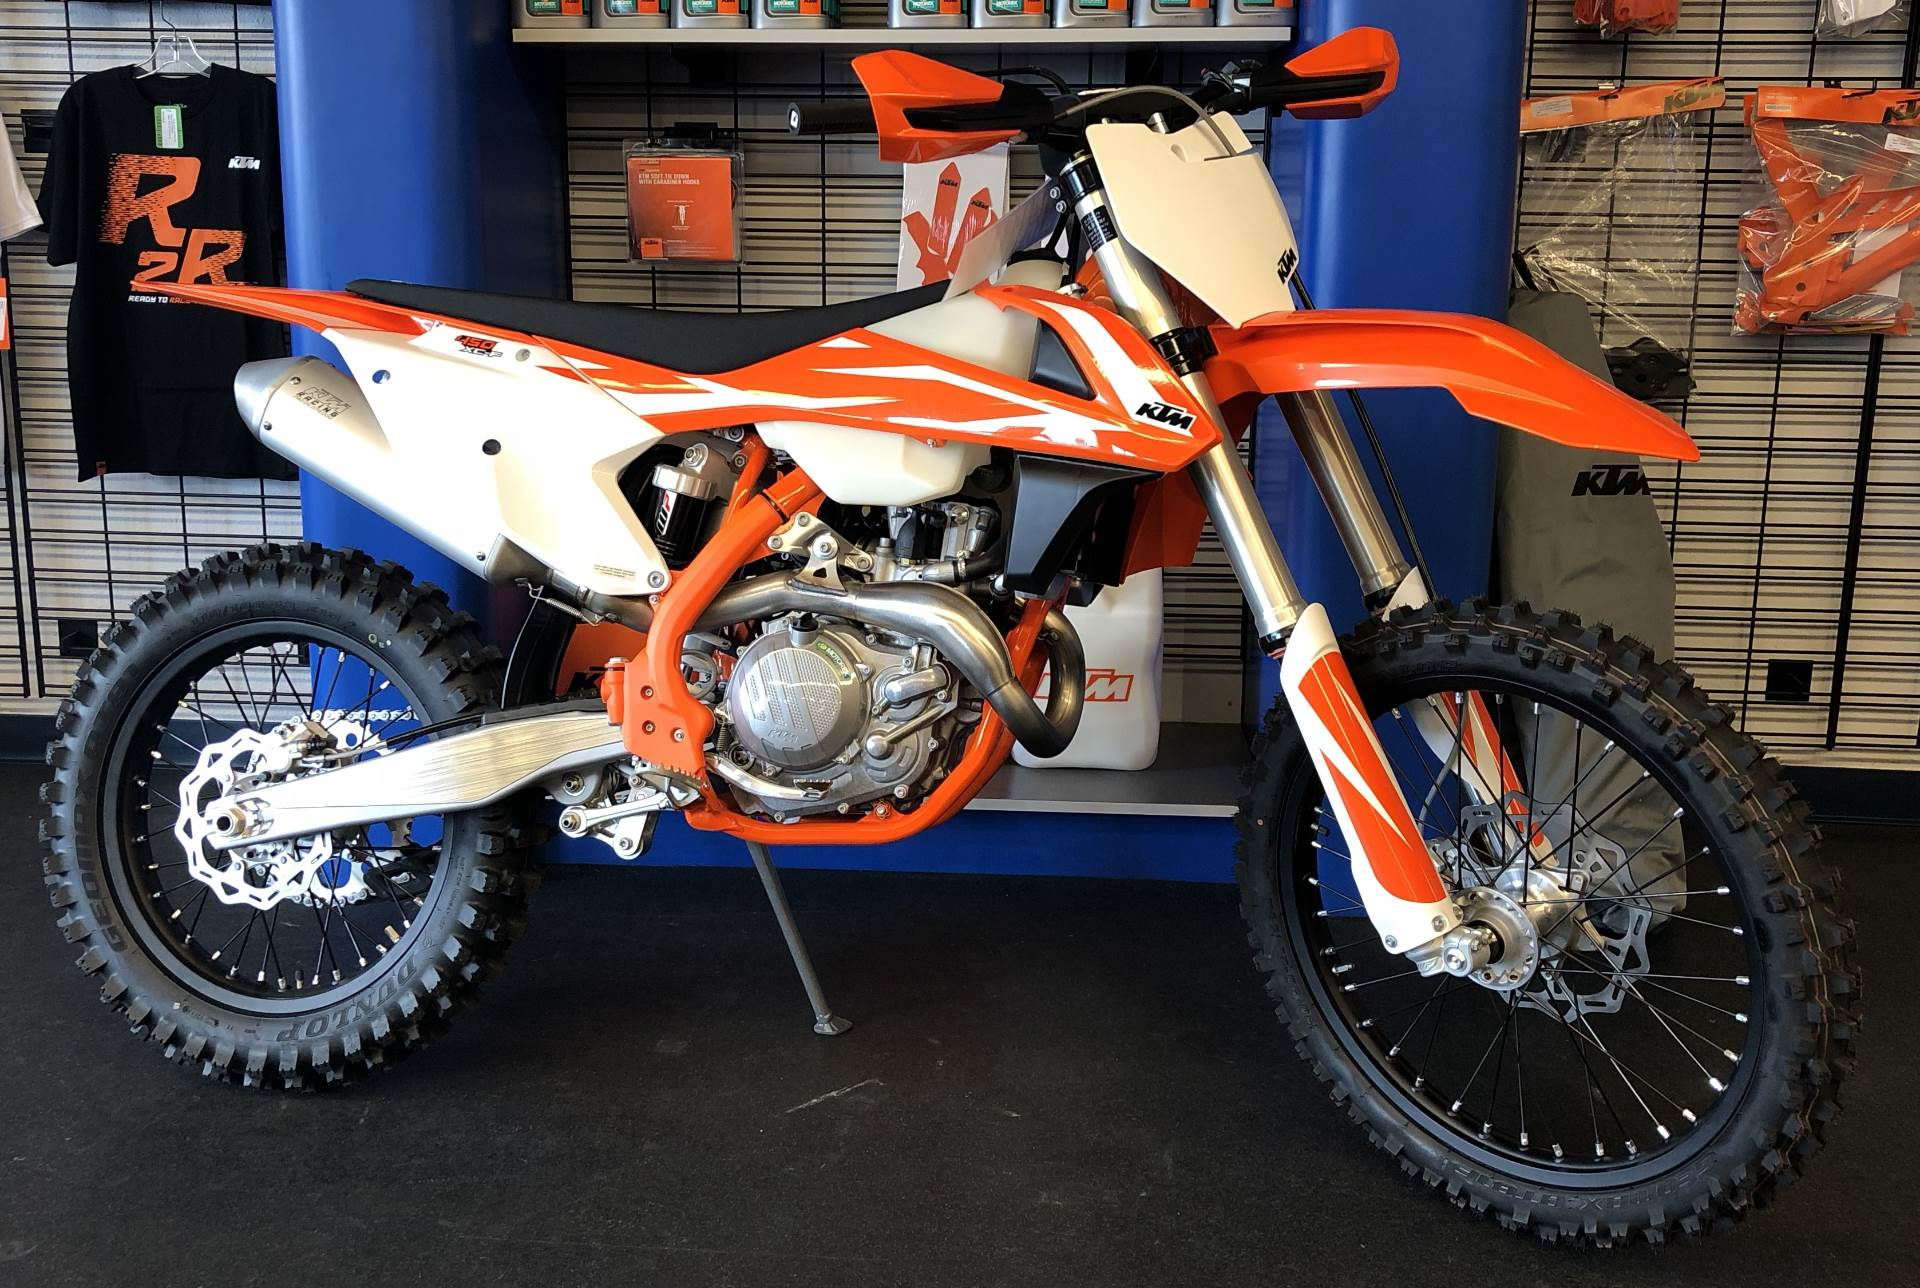 New 2018 Ktm 450 Xc F Motorcycles In Hobart Stock Number 312040 Tuff Led Wiring A Harness Indiana